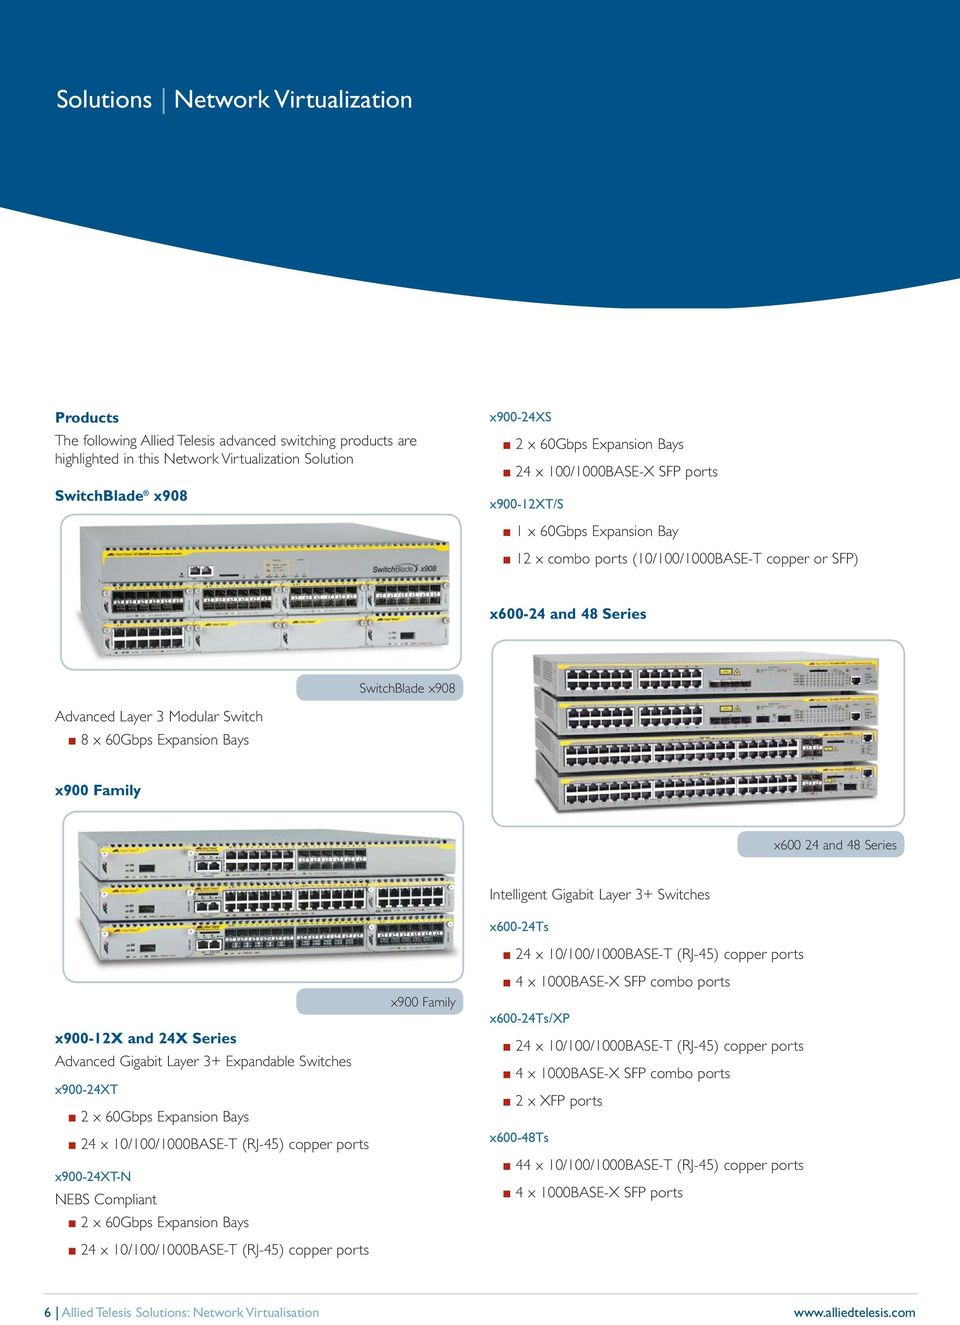 Switch 8 x 60Gbps Expansion Bays x900 Family x600 24 and 48 Series x900-12x and 24X Series Advanced Gigabit Layer 3+ Expandable Switches x900-24xt 2 x 60Gbps Expansion Bays 24 x 10/100/1000BASE-T